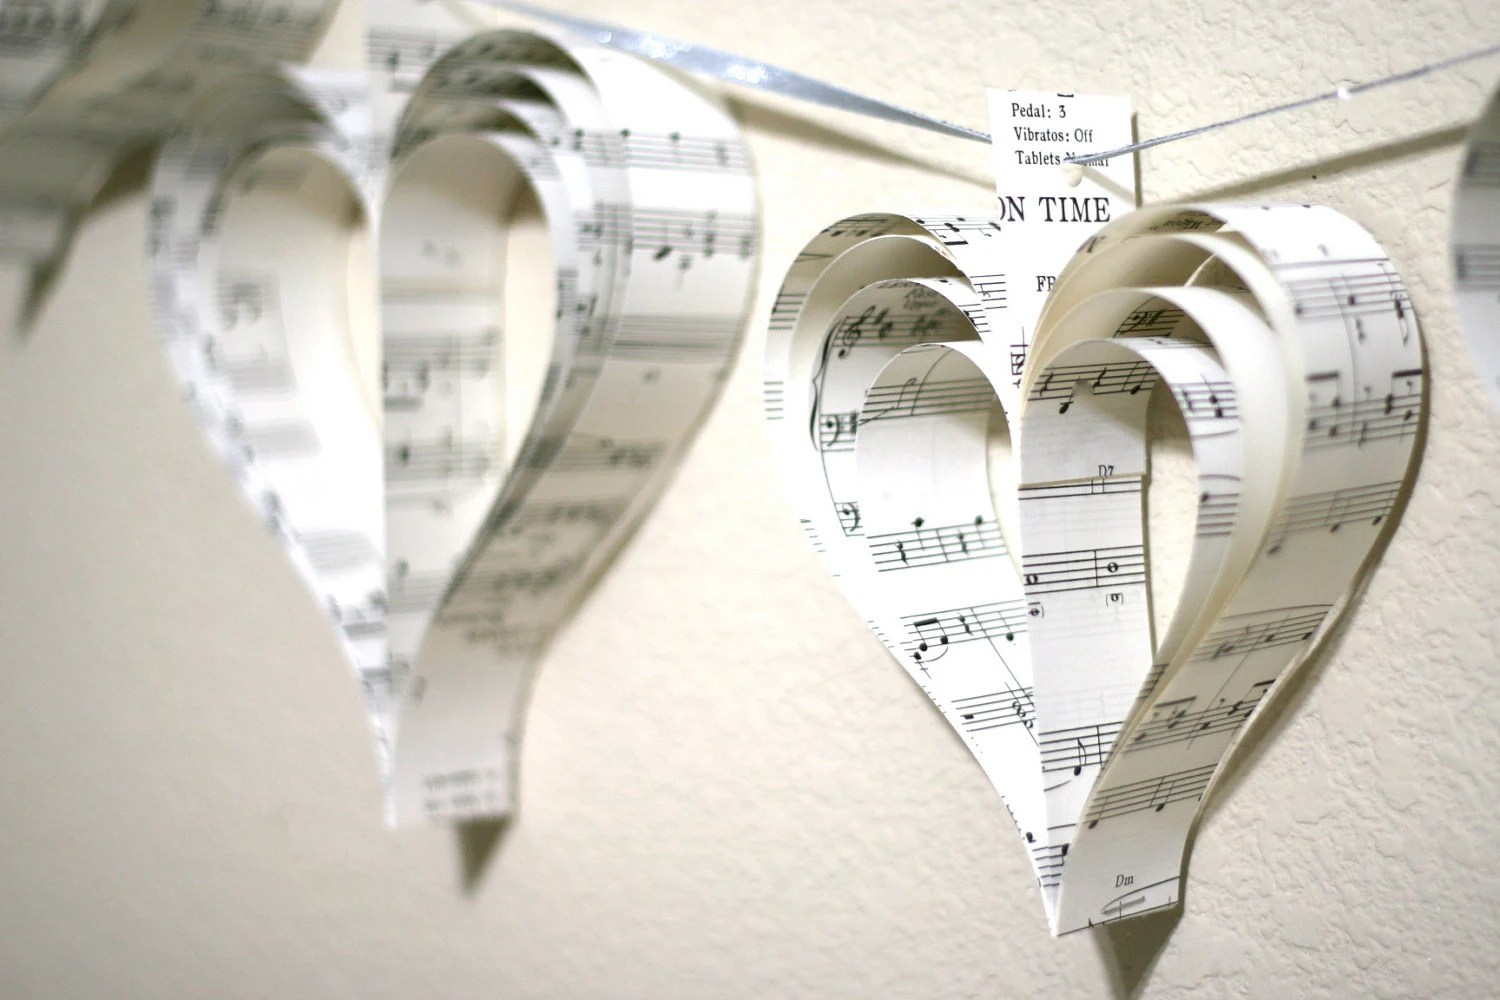 Garland Shabby Chic Paper Heart Garland-Paper Hearts  PICK YOUR COLOR(S) - aubabi78